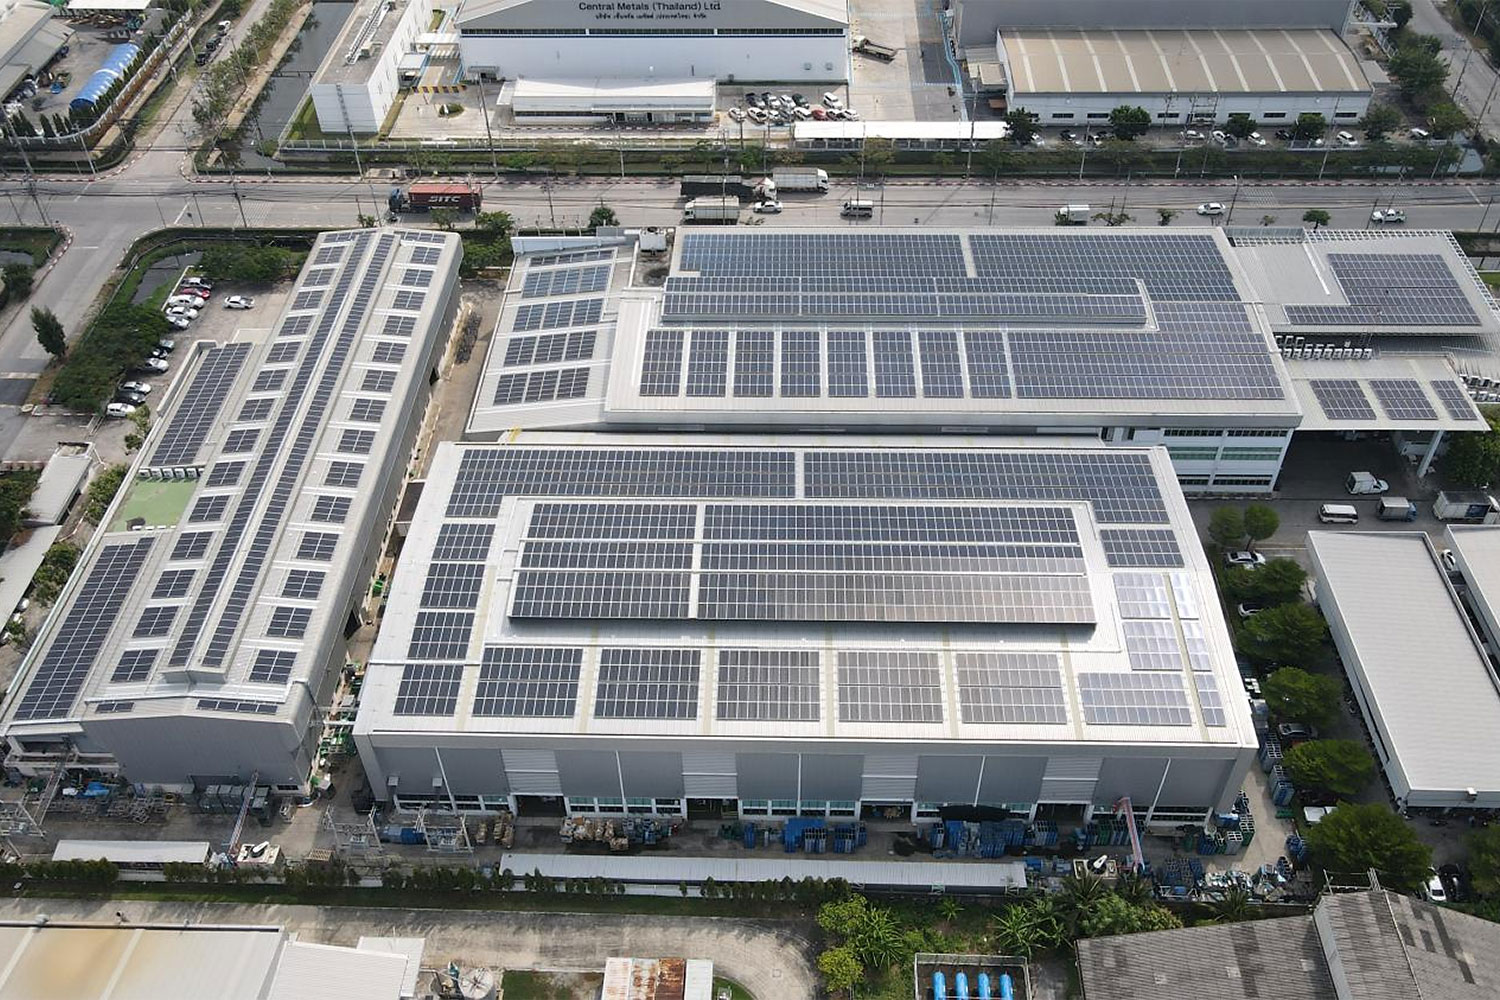 Rooftop solar panels are installed at an industrial site to take advantage of the larger surface areas.